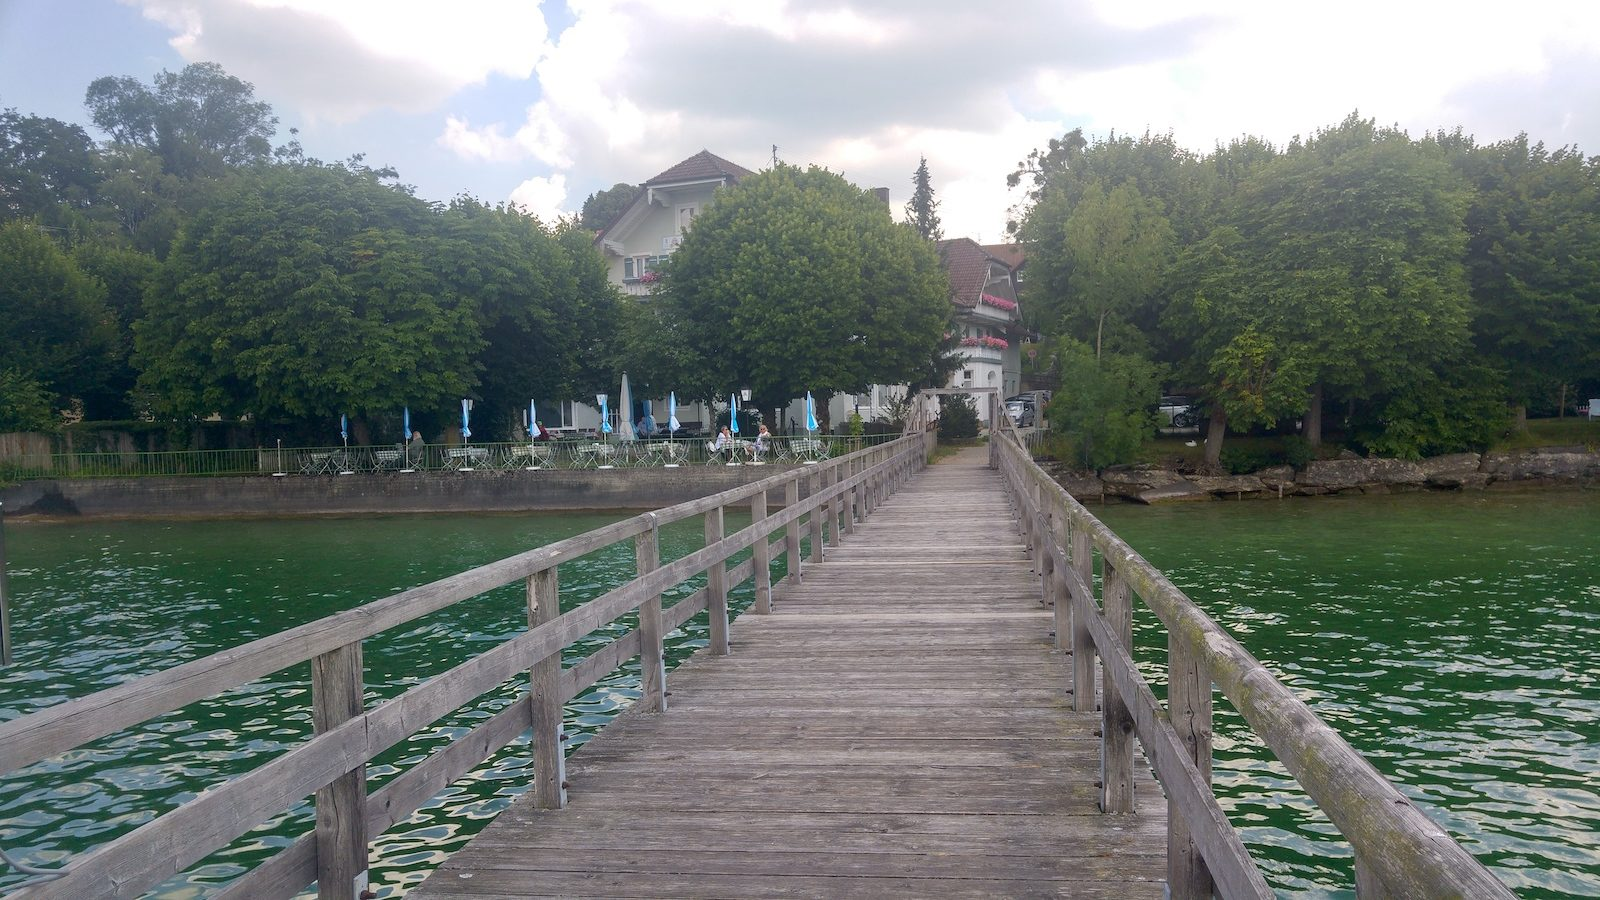 Hotel Am See in Ammerland